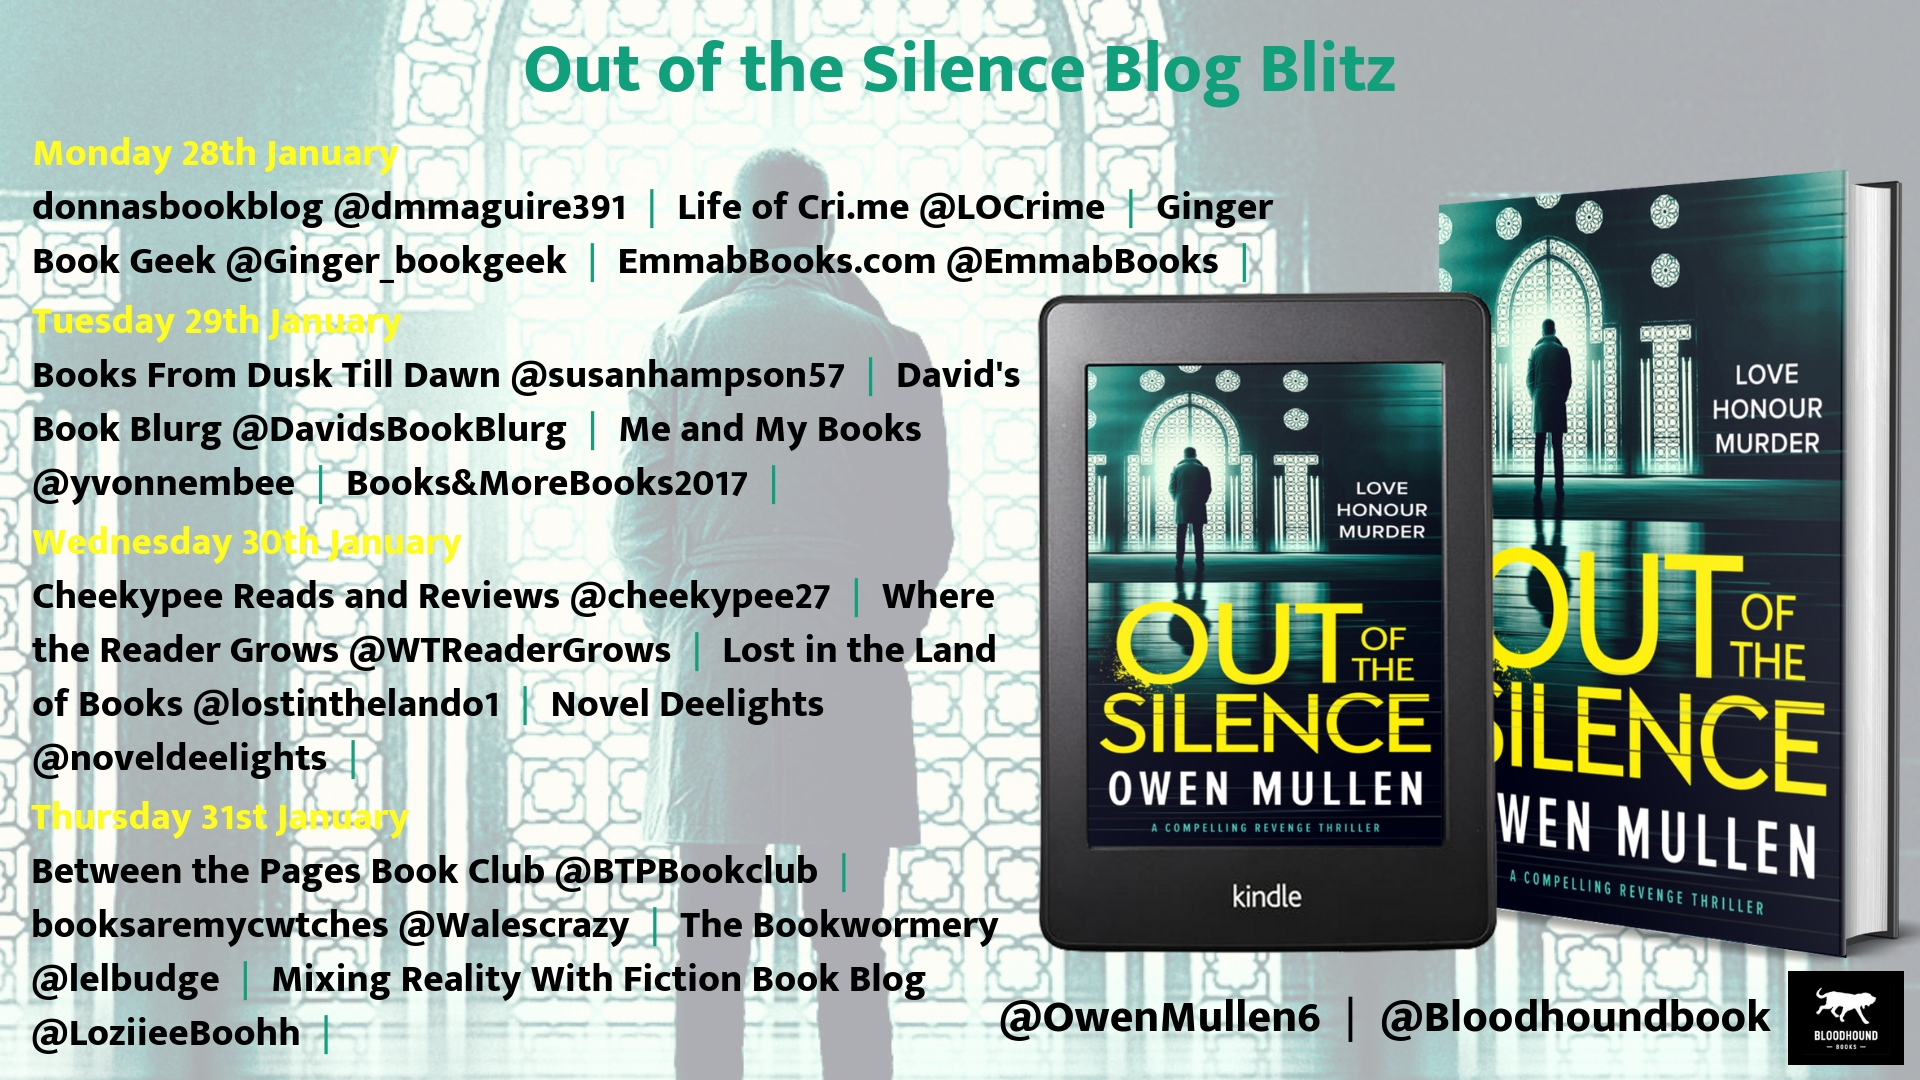 Out of the Silence Blog Blitz.jpg